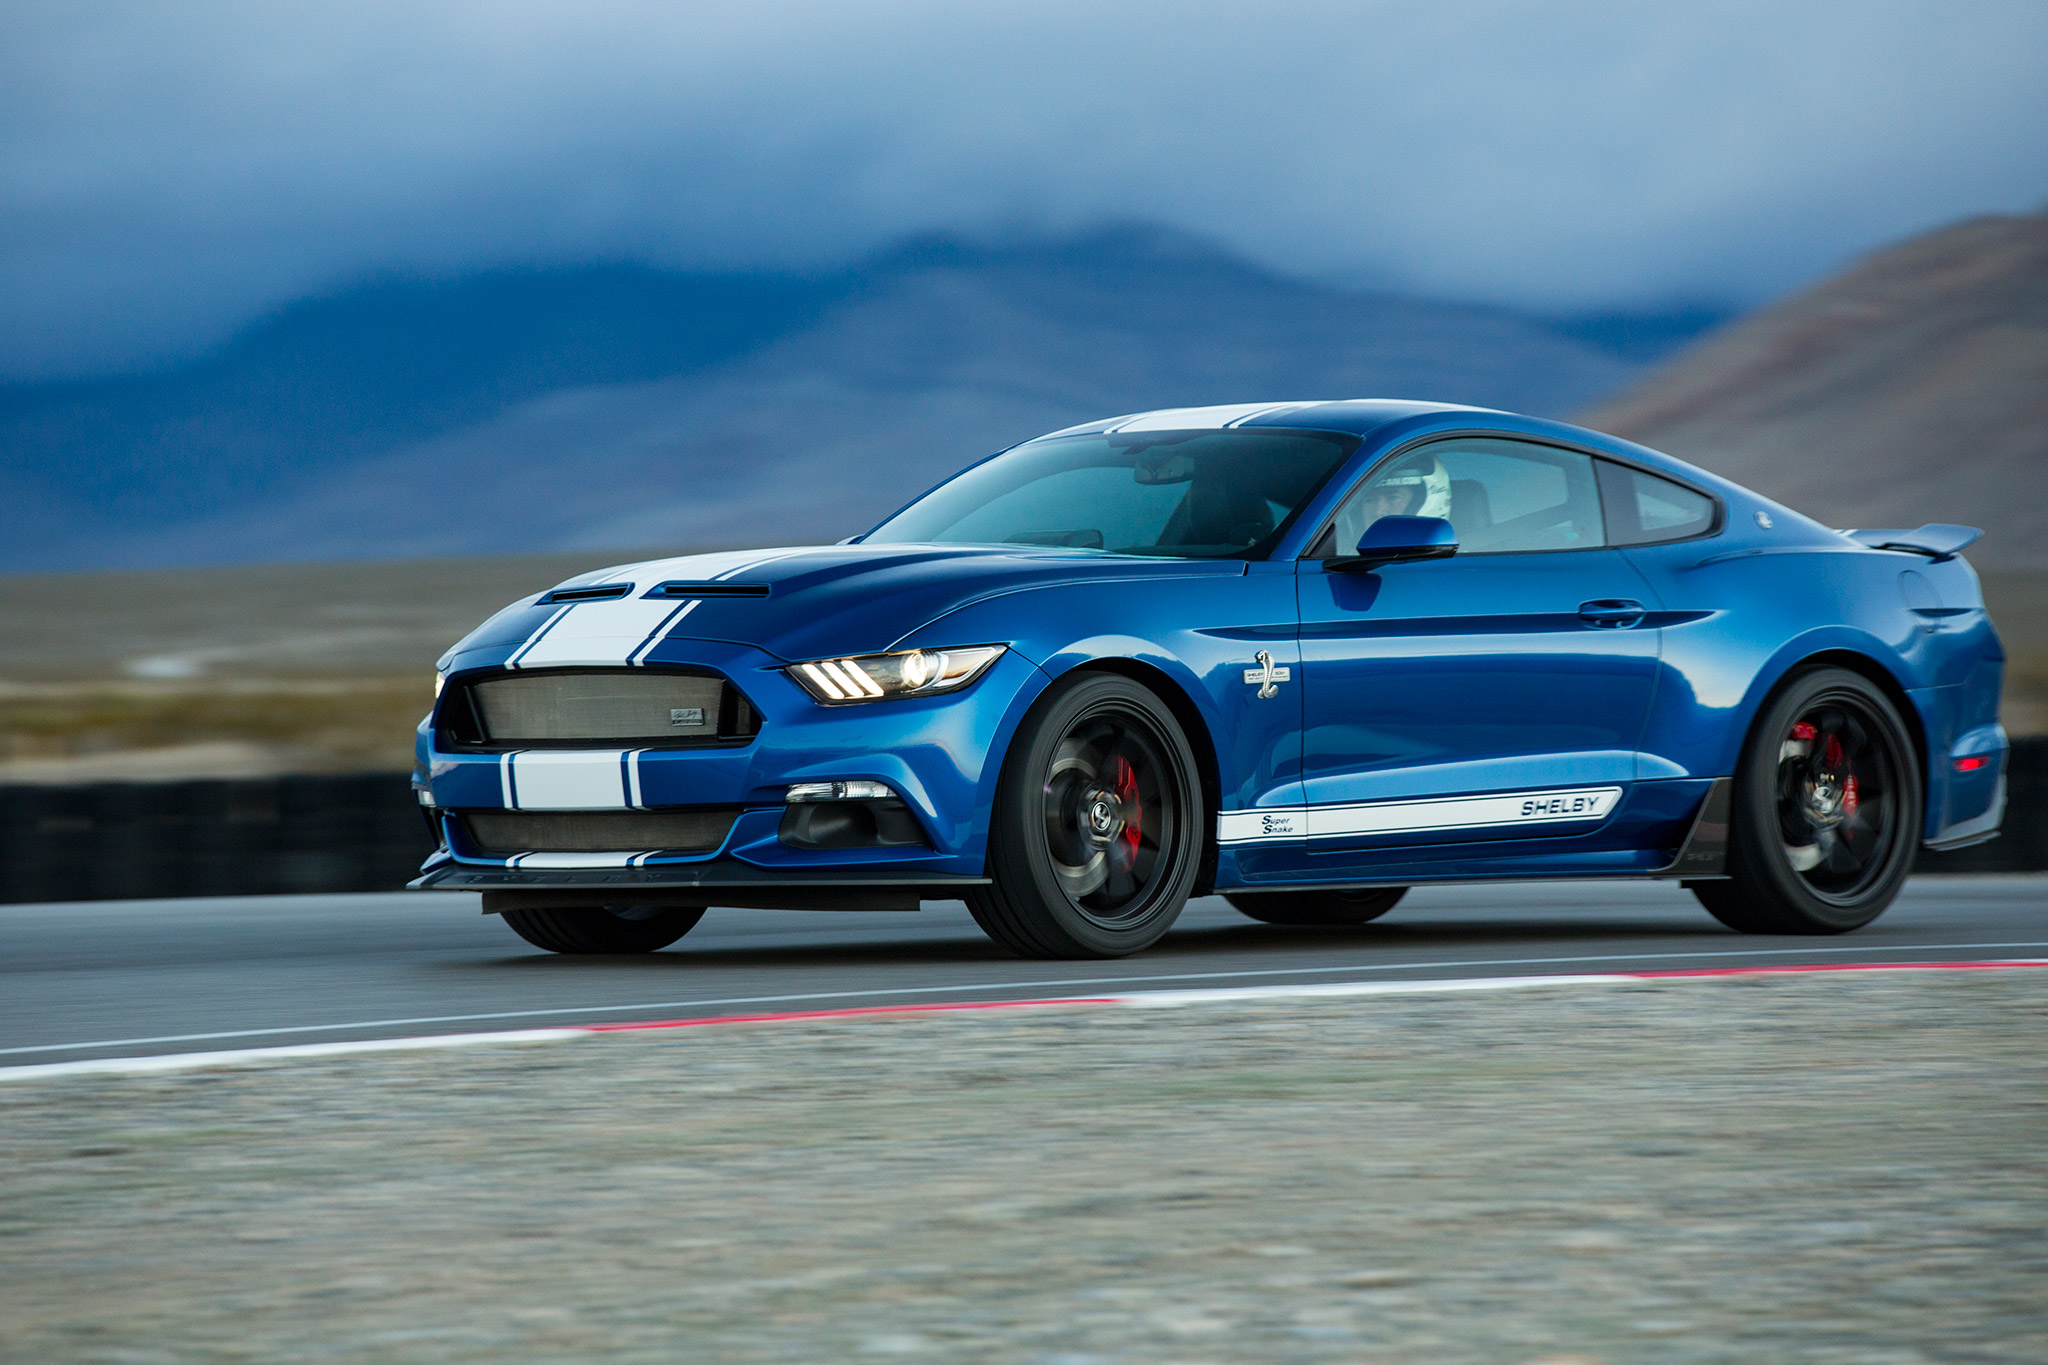 Ford And Shelby Celebrate 50th Anniversary With A 750hp 2017 Mustang Super Snake